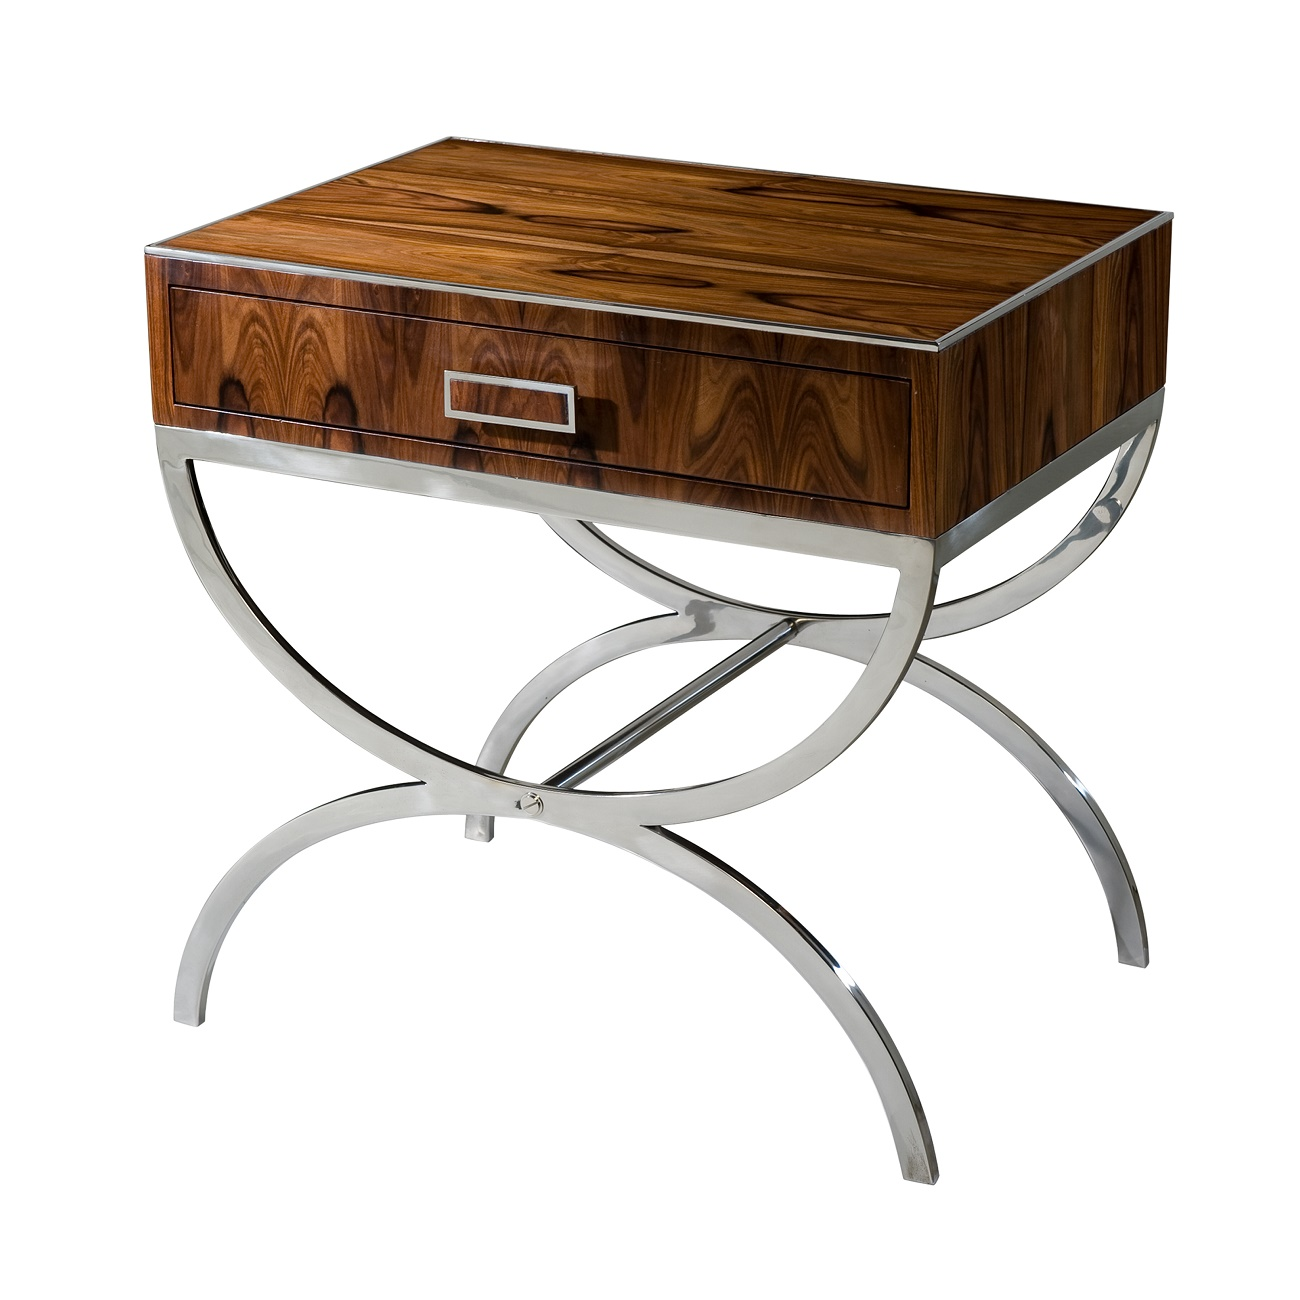 KENO5044 Dual Curves II Accent Table Theodore Alexander